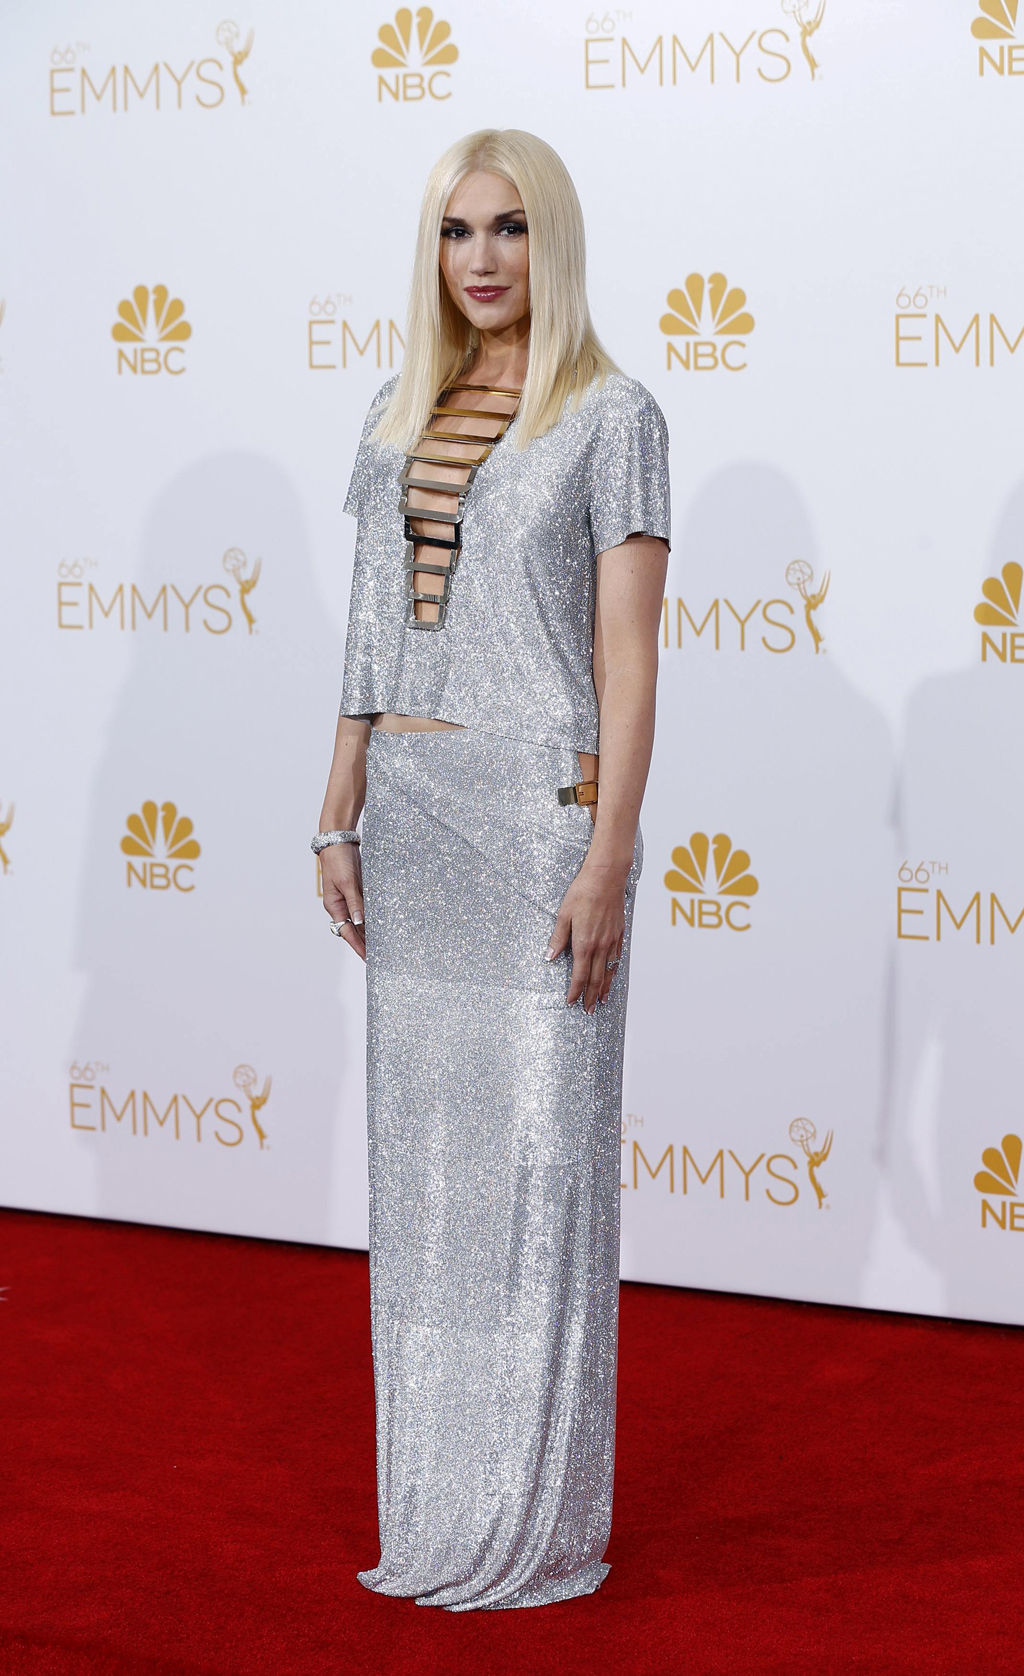 Presenter Gwen Stefani poses at the 66th Primetime Emmy Awards in Los Angeles